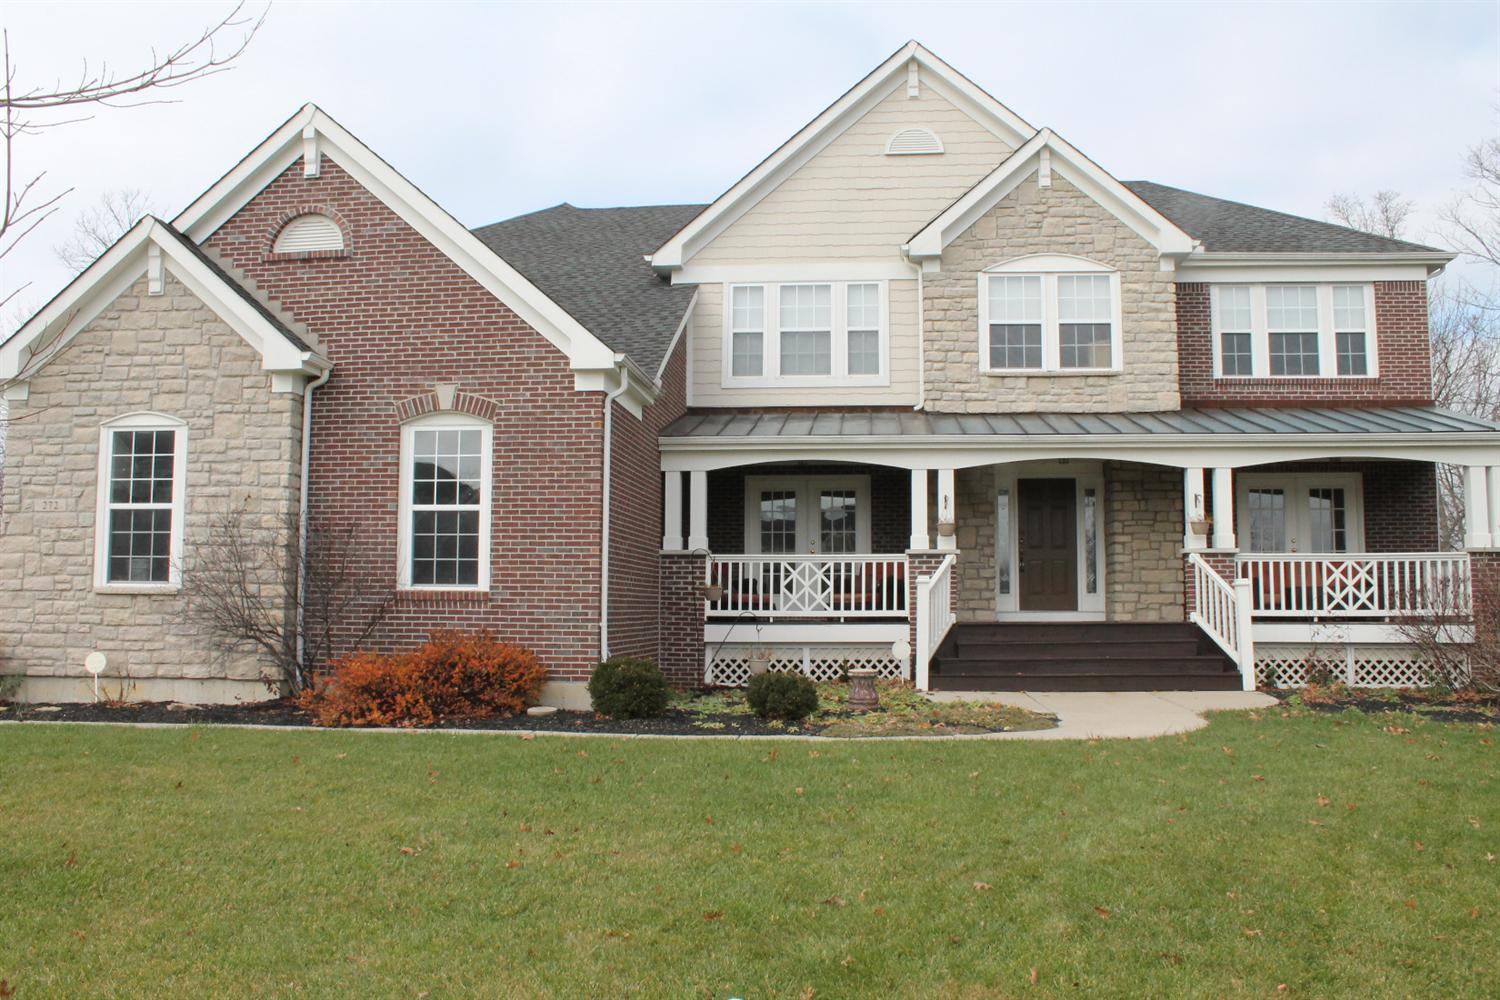 Photo 1 for 272 Ridgepointe Dr Cold Spring, KY 41076